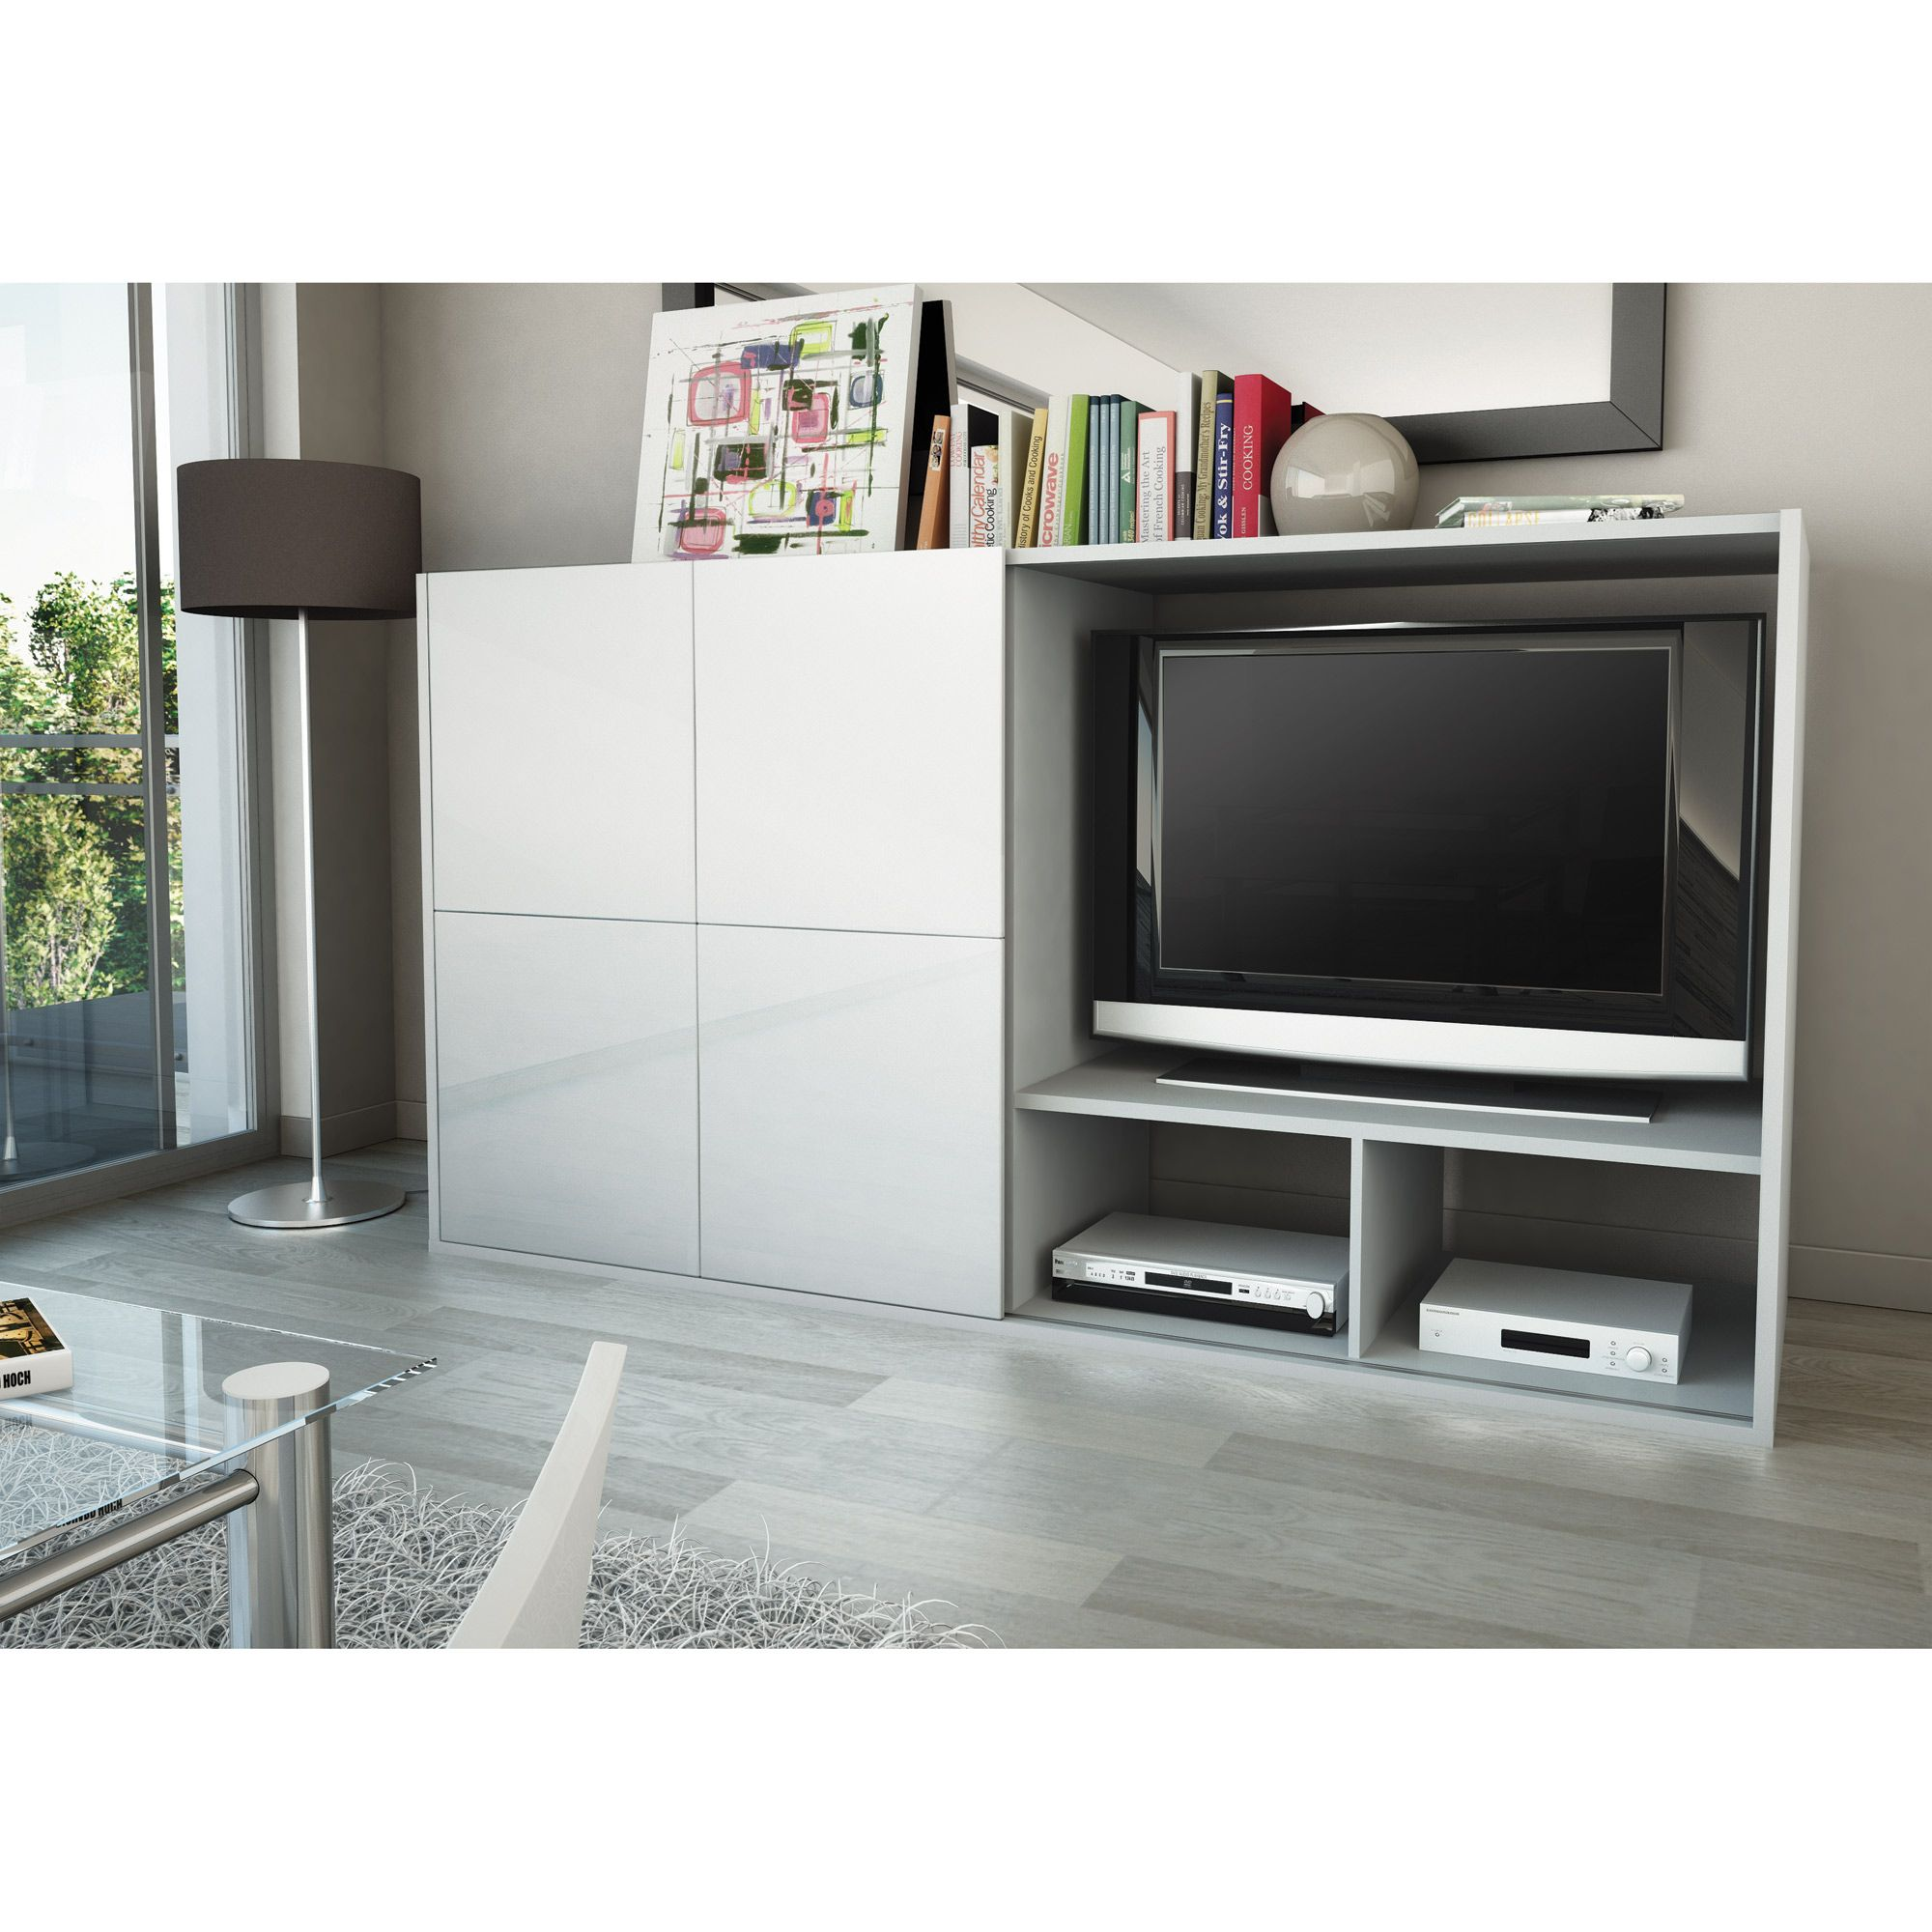 Meuble Tv Porte - Inspirant Meuble Tv Porte Coulissante D Coration Fran Aise [mjhdah]https://www.gianecchini.us/wp-content/uploads/images/1515929188-meuble-tv-design-avec-porte-coulissante-solutions-pour-la-meuble-tv-porte-coulissante.jpg